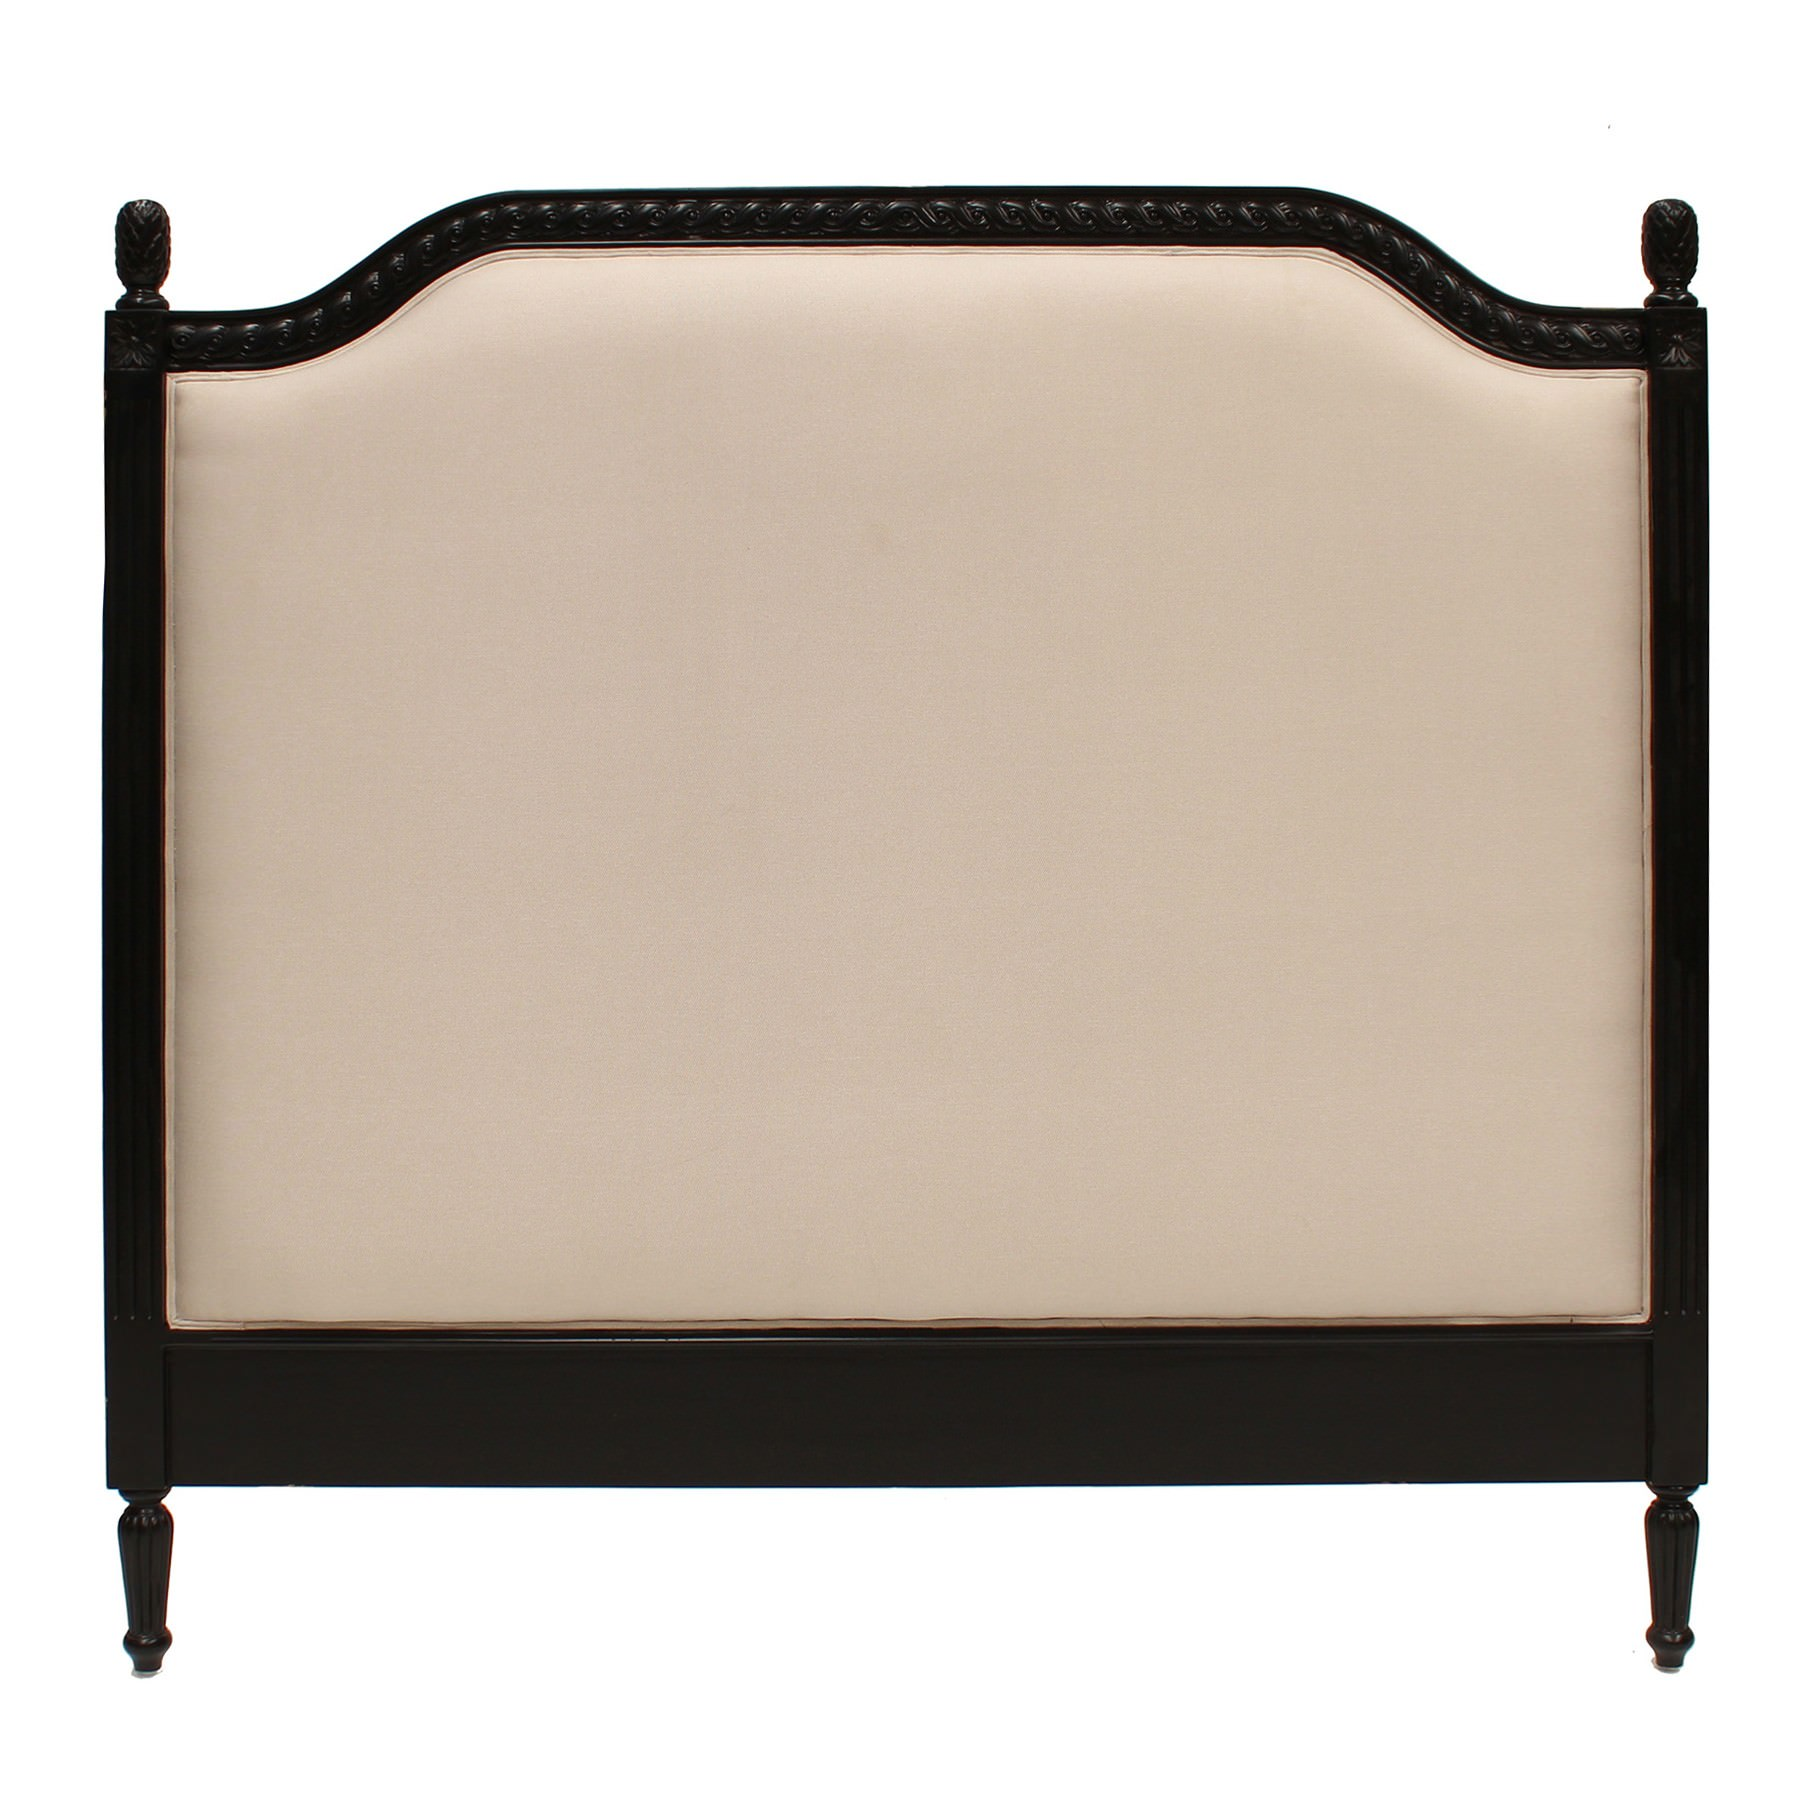 Lapalisse Hand Crafted Upholstered  Mahogany Timber Bed Headboard, KIng, Black